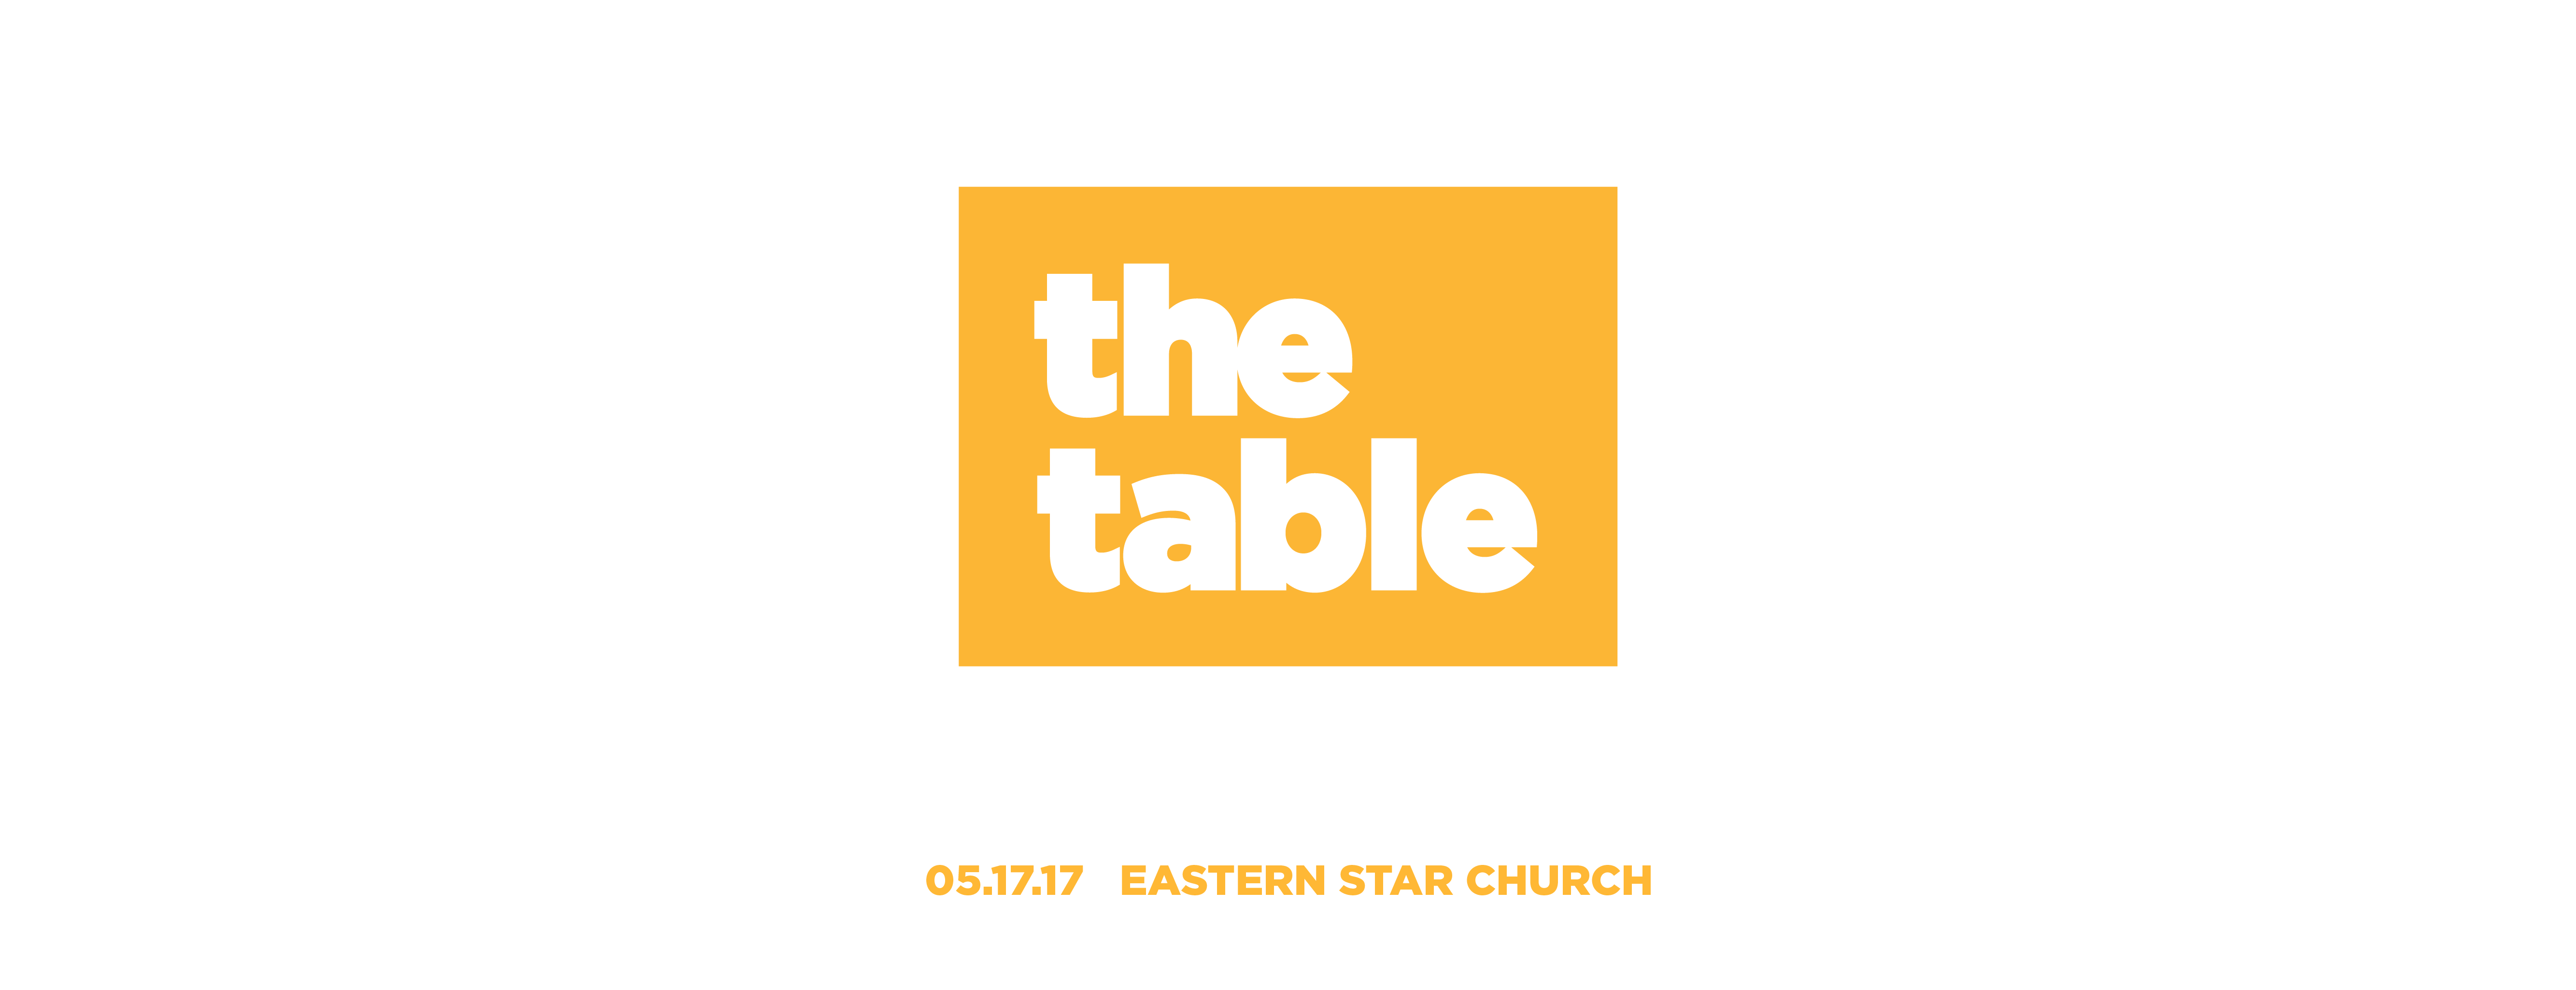 Join us around The Table.